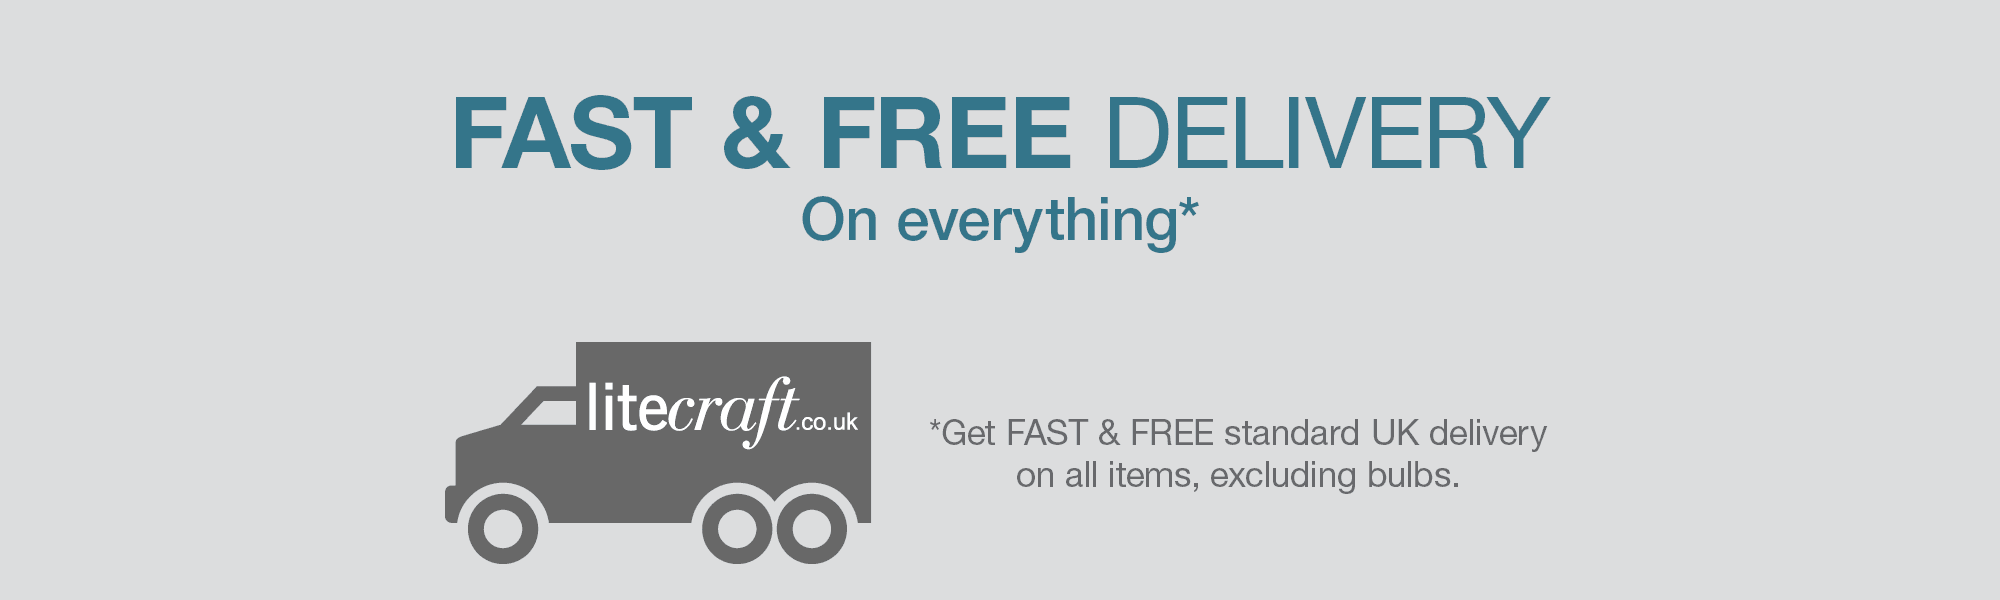 FAST & FREE Standard UK Delivery on All Items. Excluding Bulbs